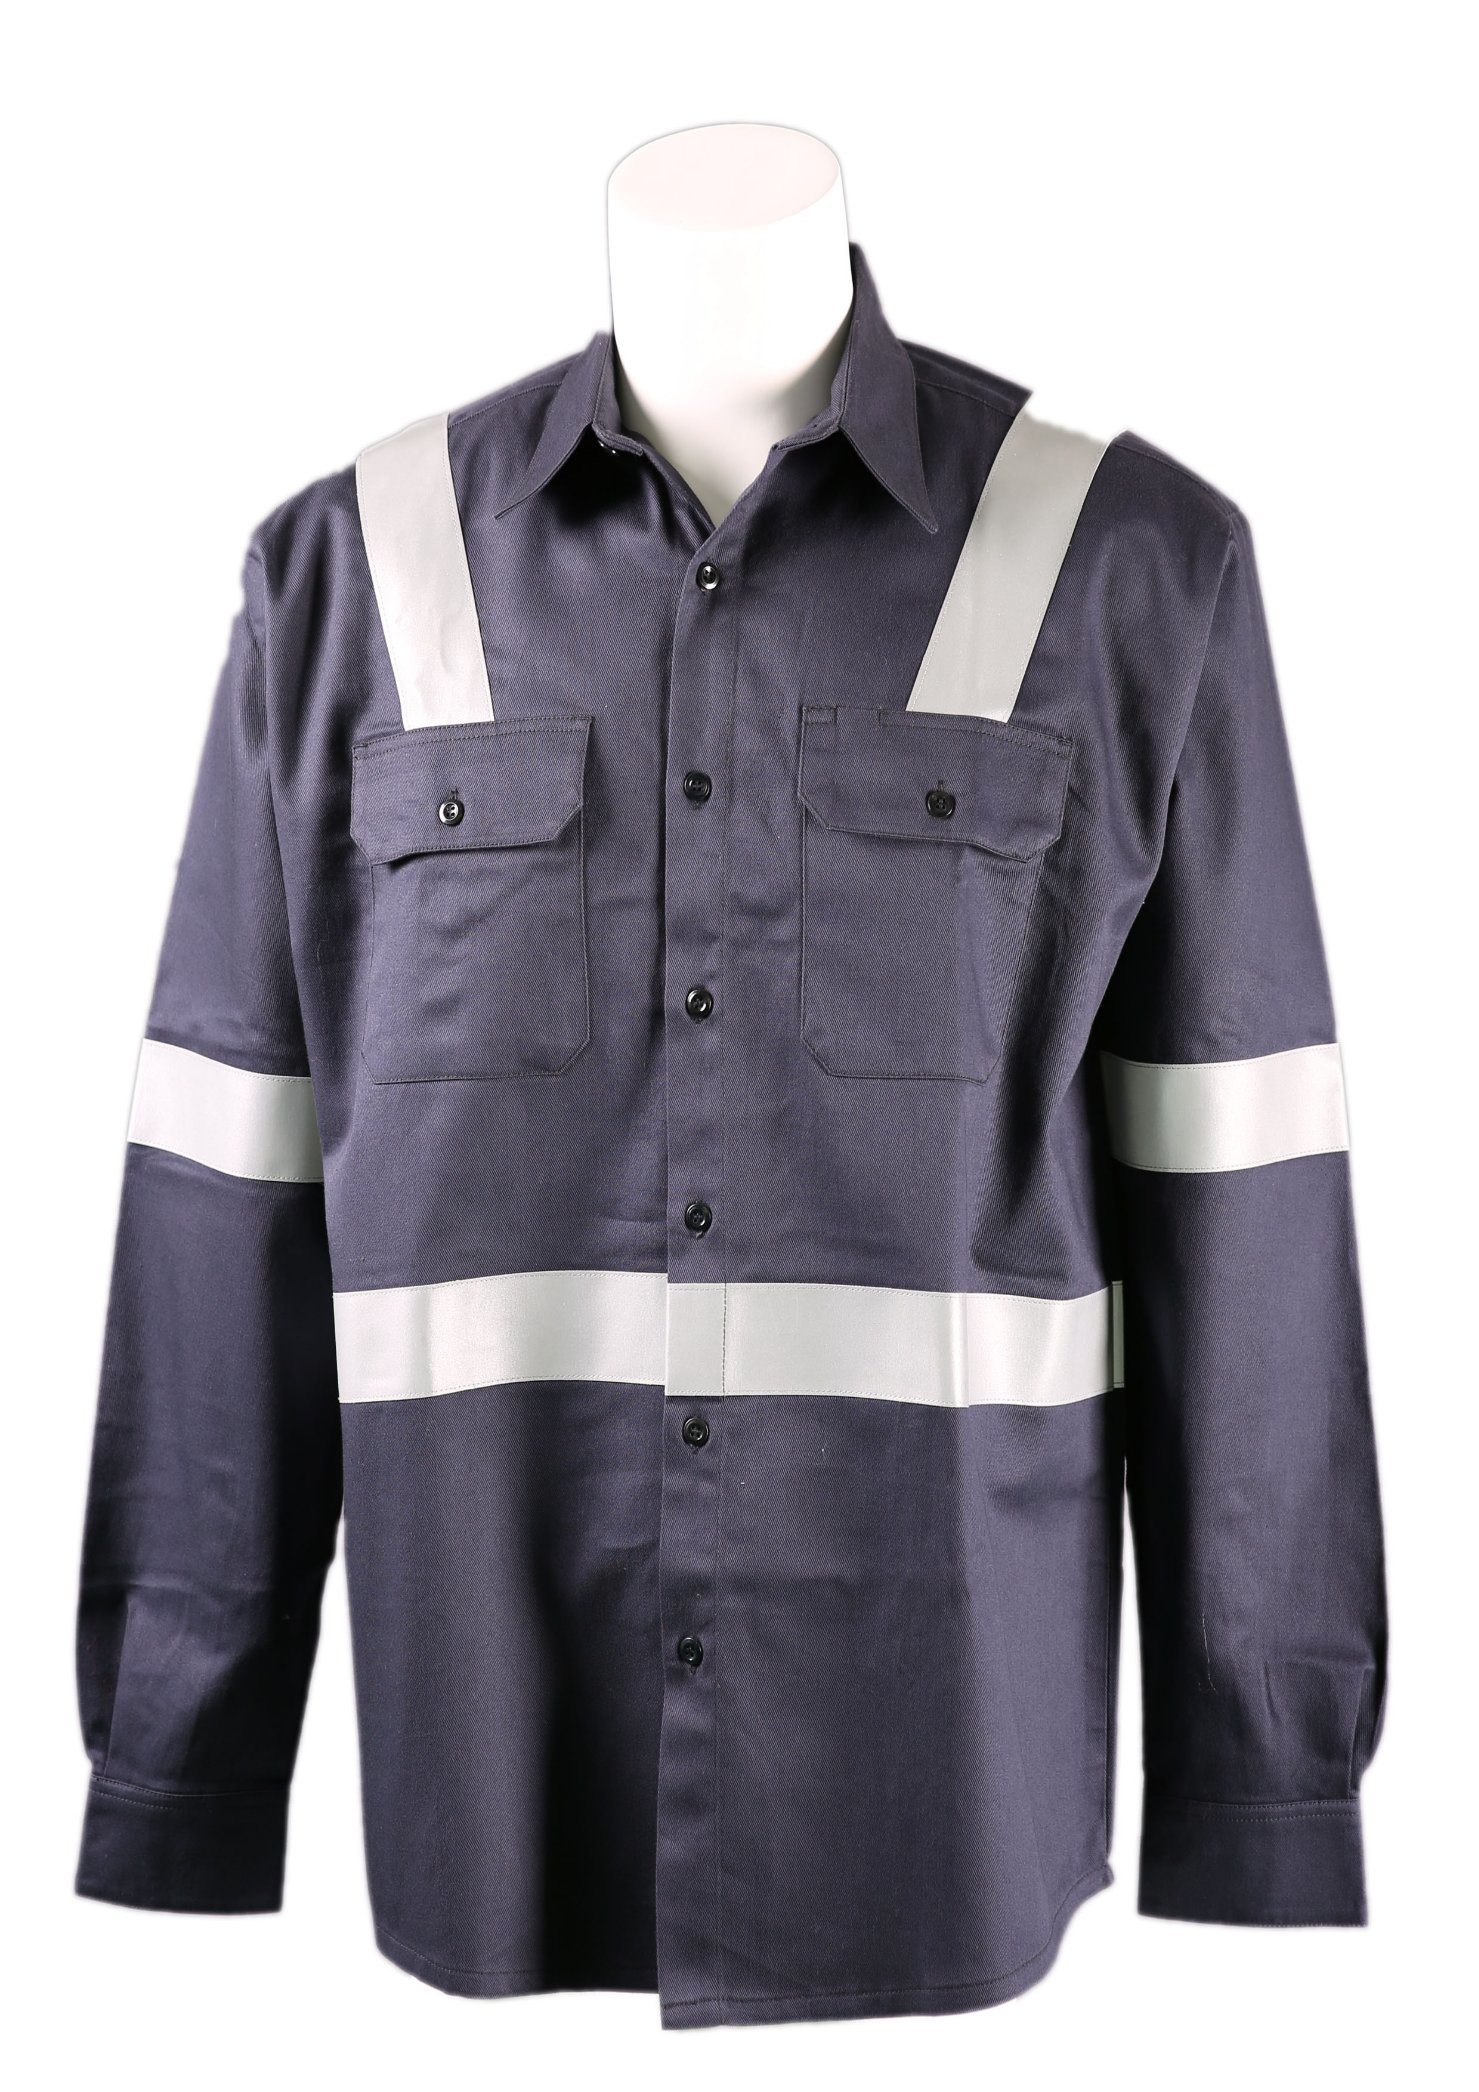 Nfpa 2112 Safety Workwear Shirt Fr Shirt